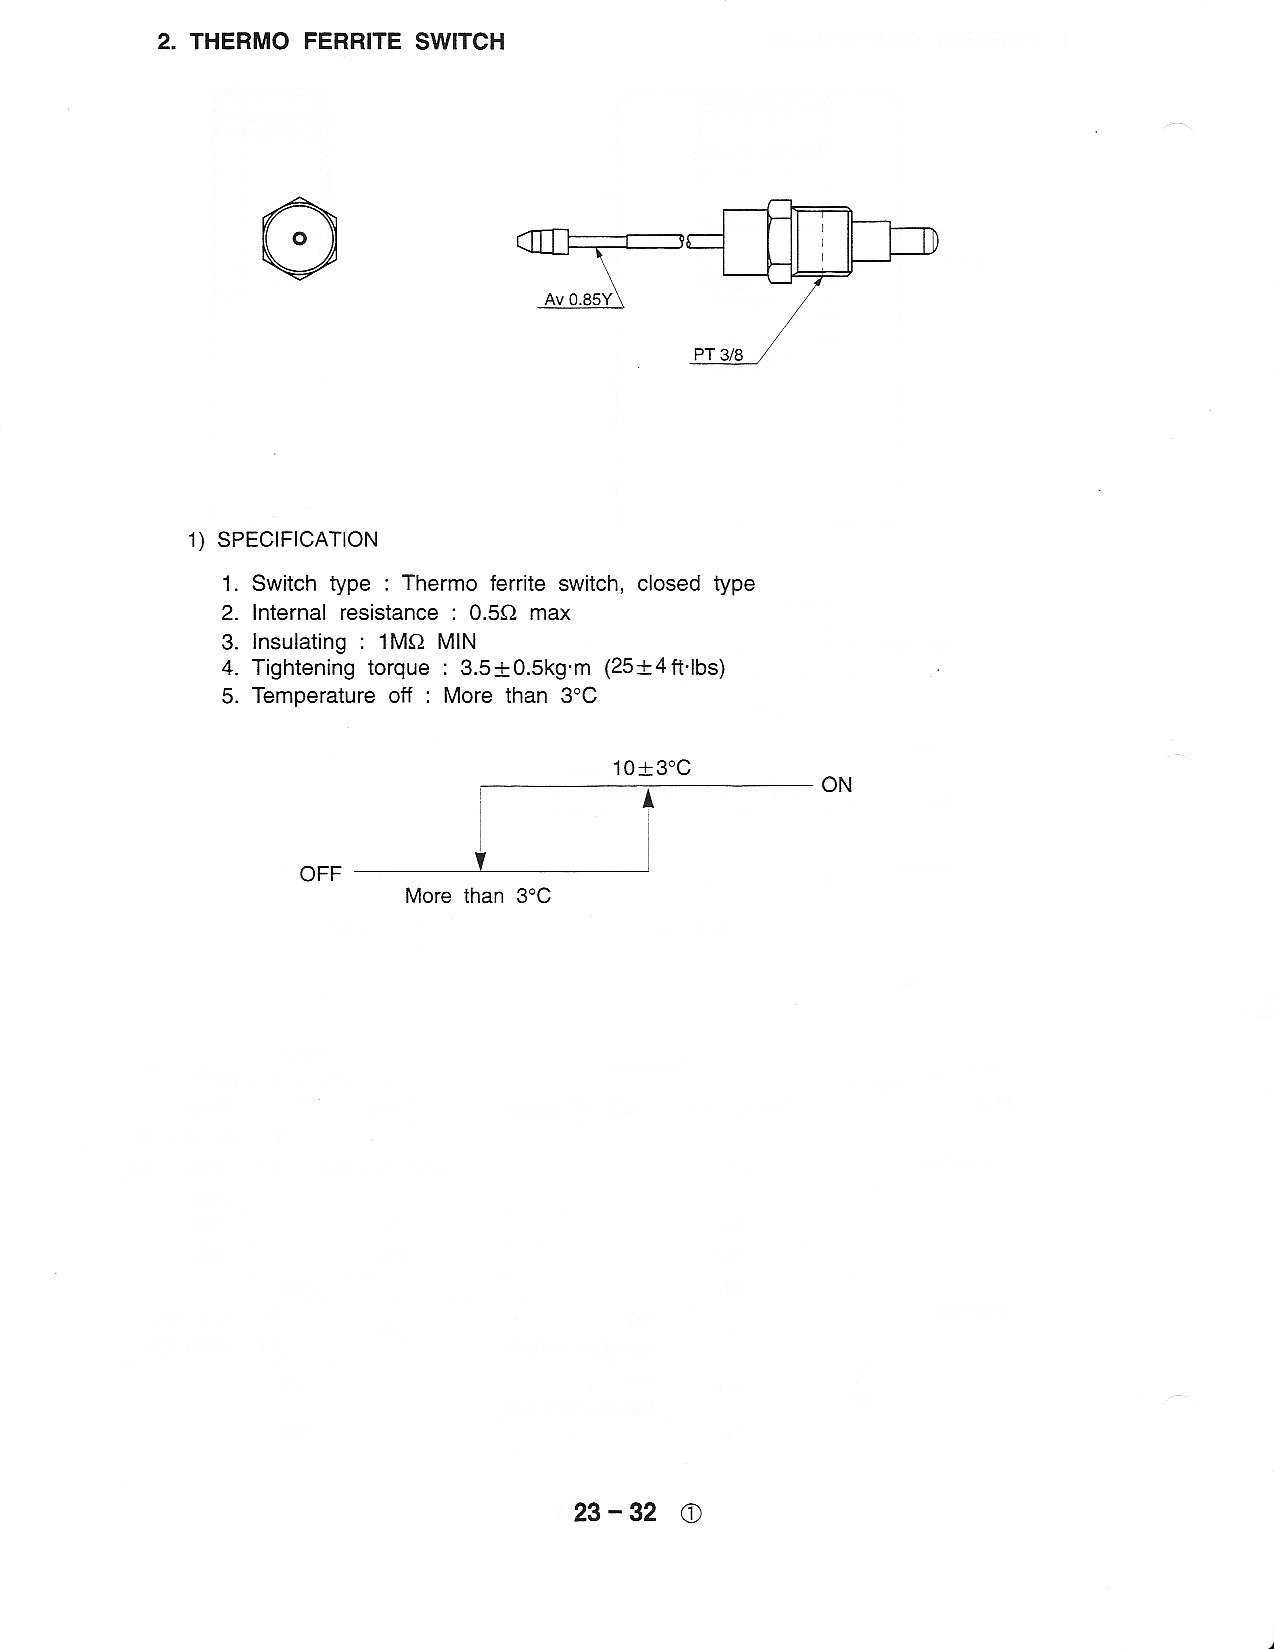 Need A Wiring Schematic For The Starting System On Samsung 130 Hyundai 210lc 7 Diagram Graphic